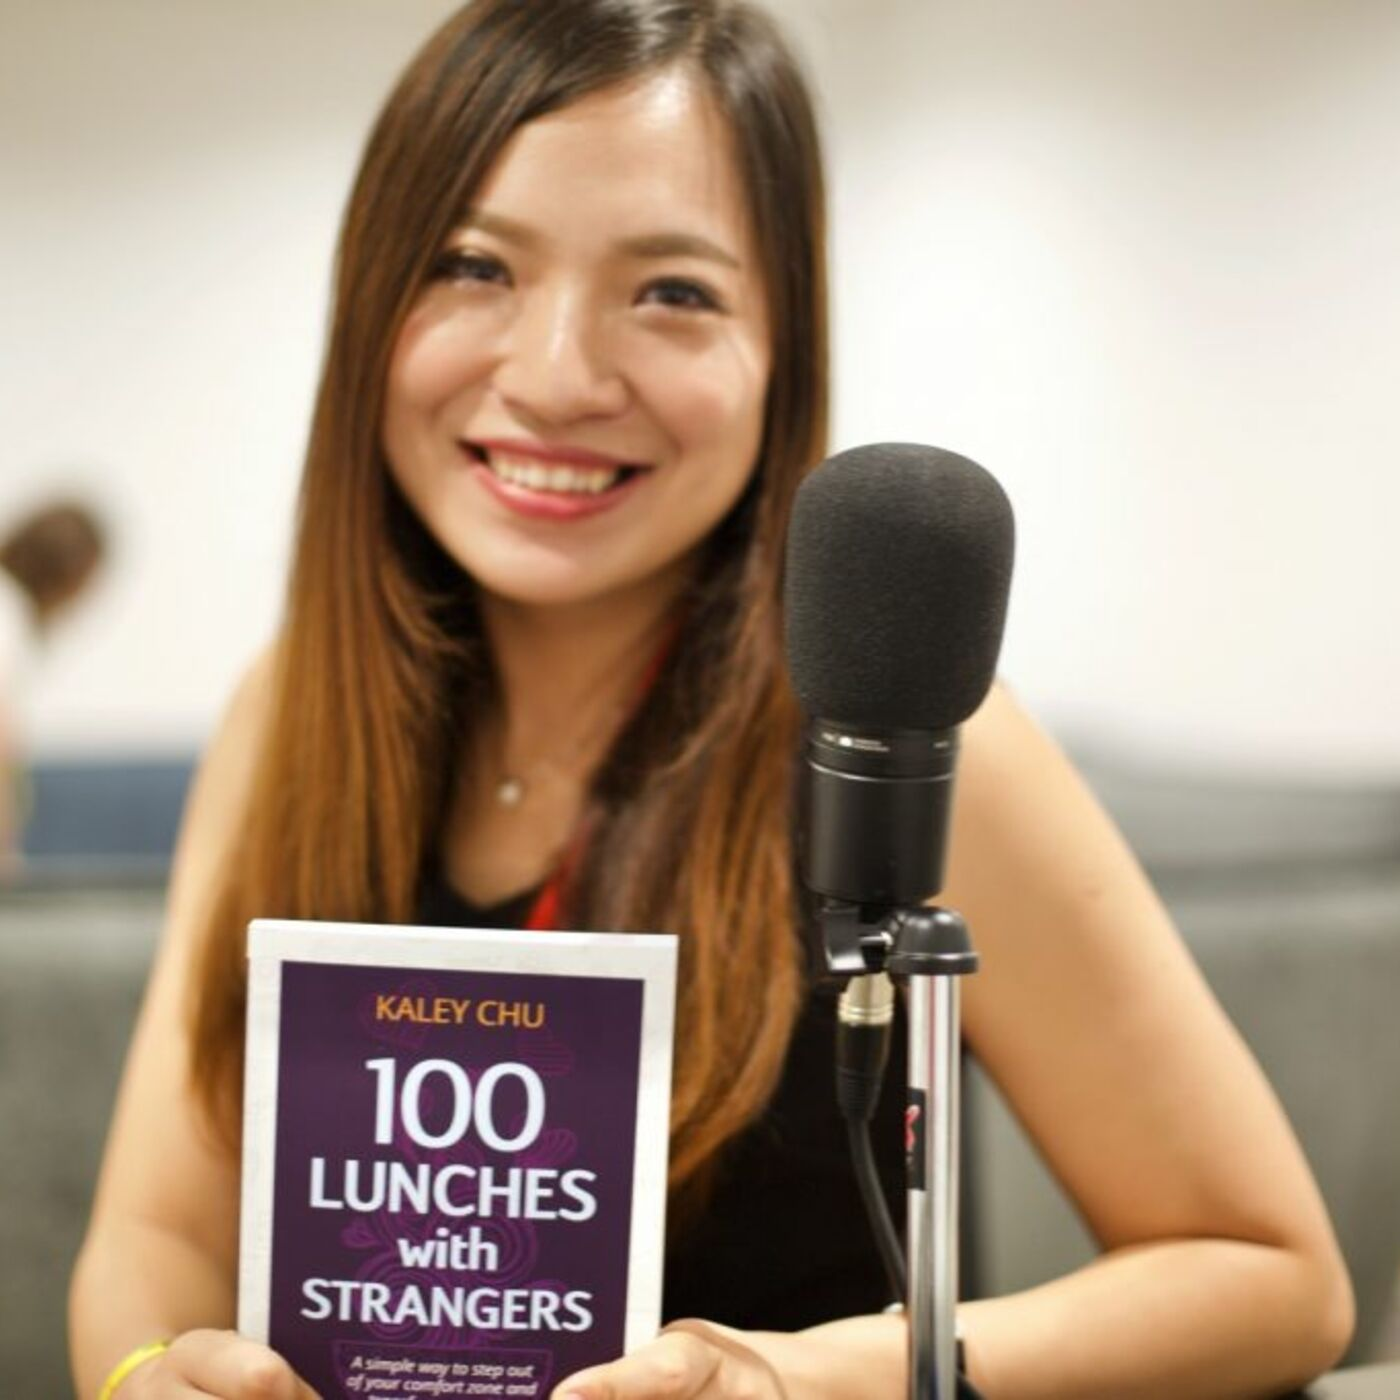 Have Lunch with 100 Strangers